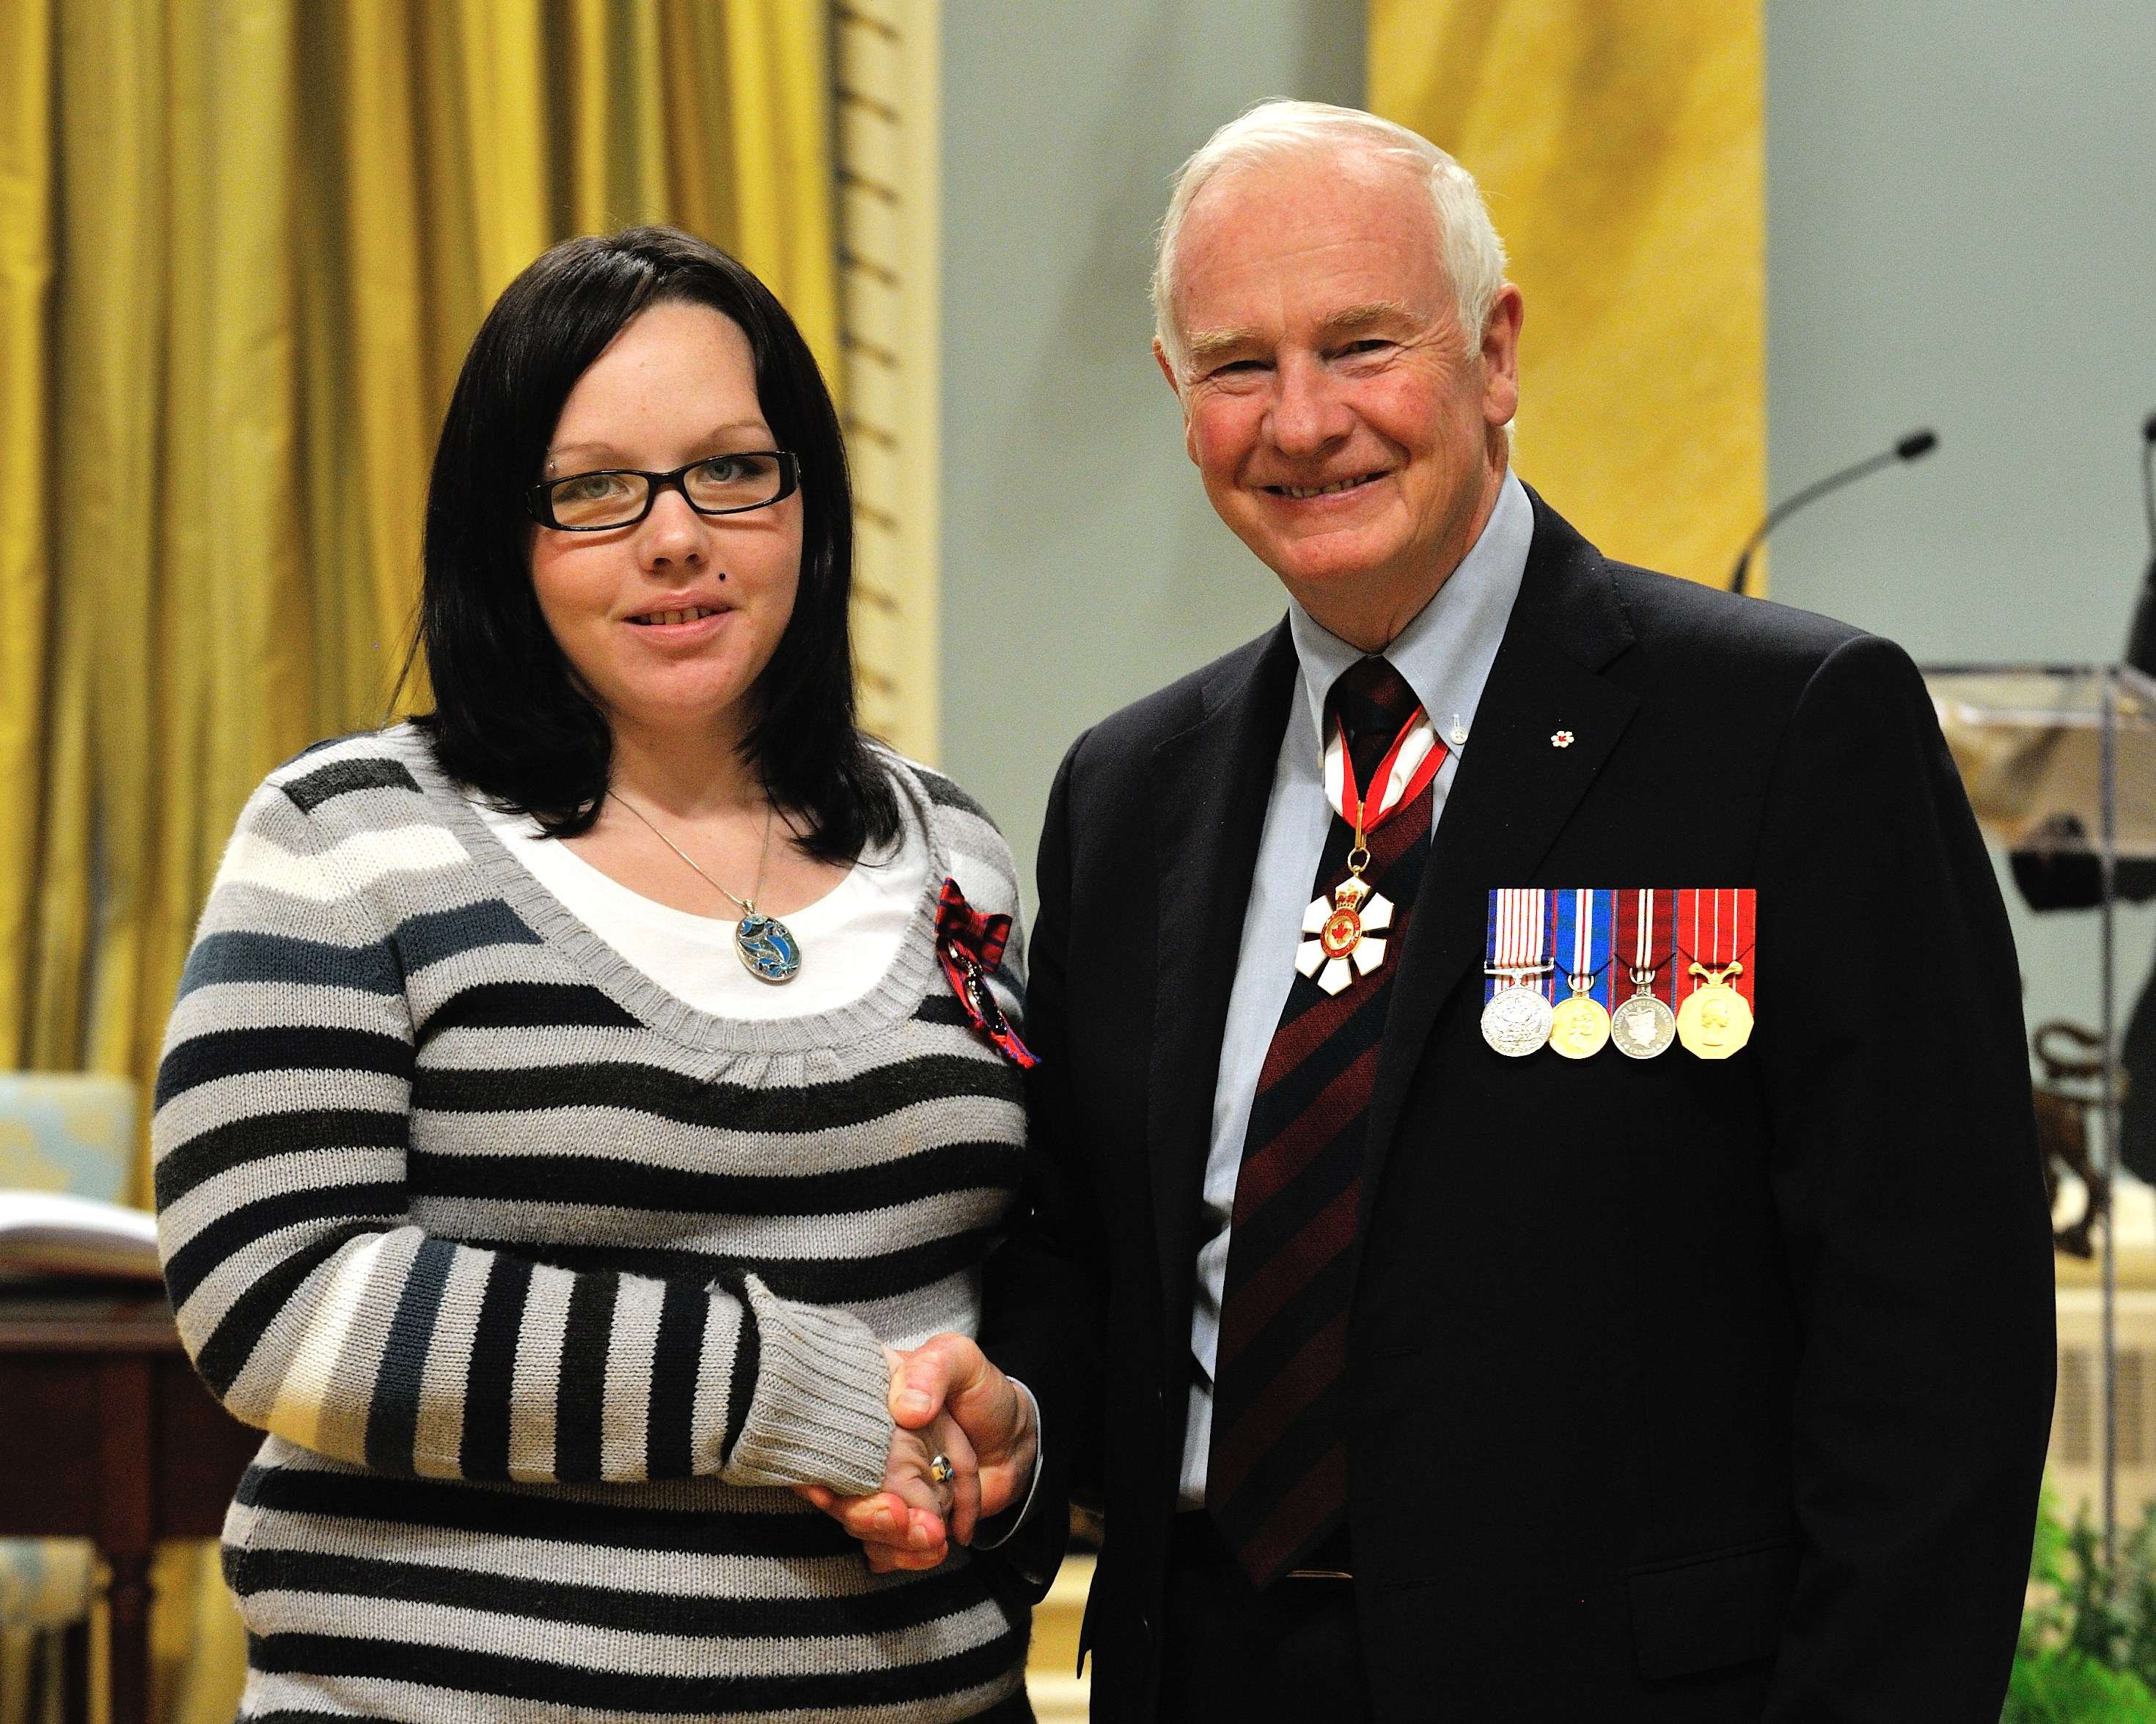 On November 19, 2008, Daniel Chrusch, Vincent Fontaine and Candace Smith (pictured) rescued a man from a burning house, in Pine Falls, Manitoba. Ms. Smith, Mr. Fontaine and his elderly father, who lived in the house, woke up to find their living room on fire and their exit blocked. Mr. Fontaine climbed out of his bedroom window, but unfortunately, his father had fallen unconscious in the hallway and Ms. Smith was trapped in her bedroom. Their neighbour, Mr. Chrusch, entered the house and, after withdrawing several times because of the heat and smoke, called out to the victims to come towards his voice. Crawling beneath the smoke, Ms. Smith grabbed the elderly victim and dragged him towards Messrs. Chrusch and Fontaine, who helped bring him outside.